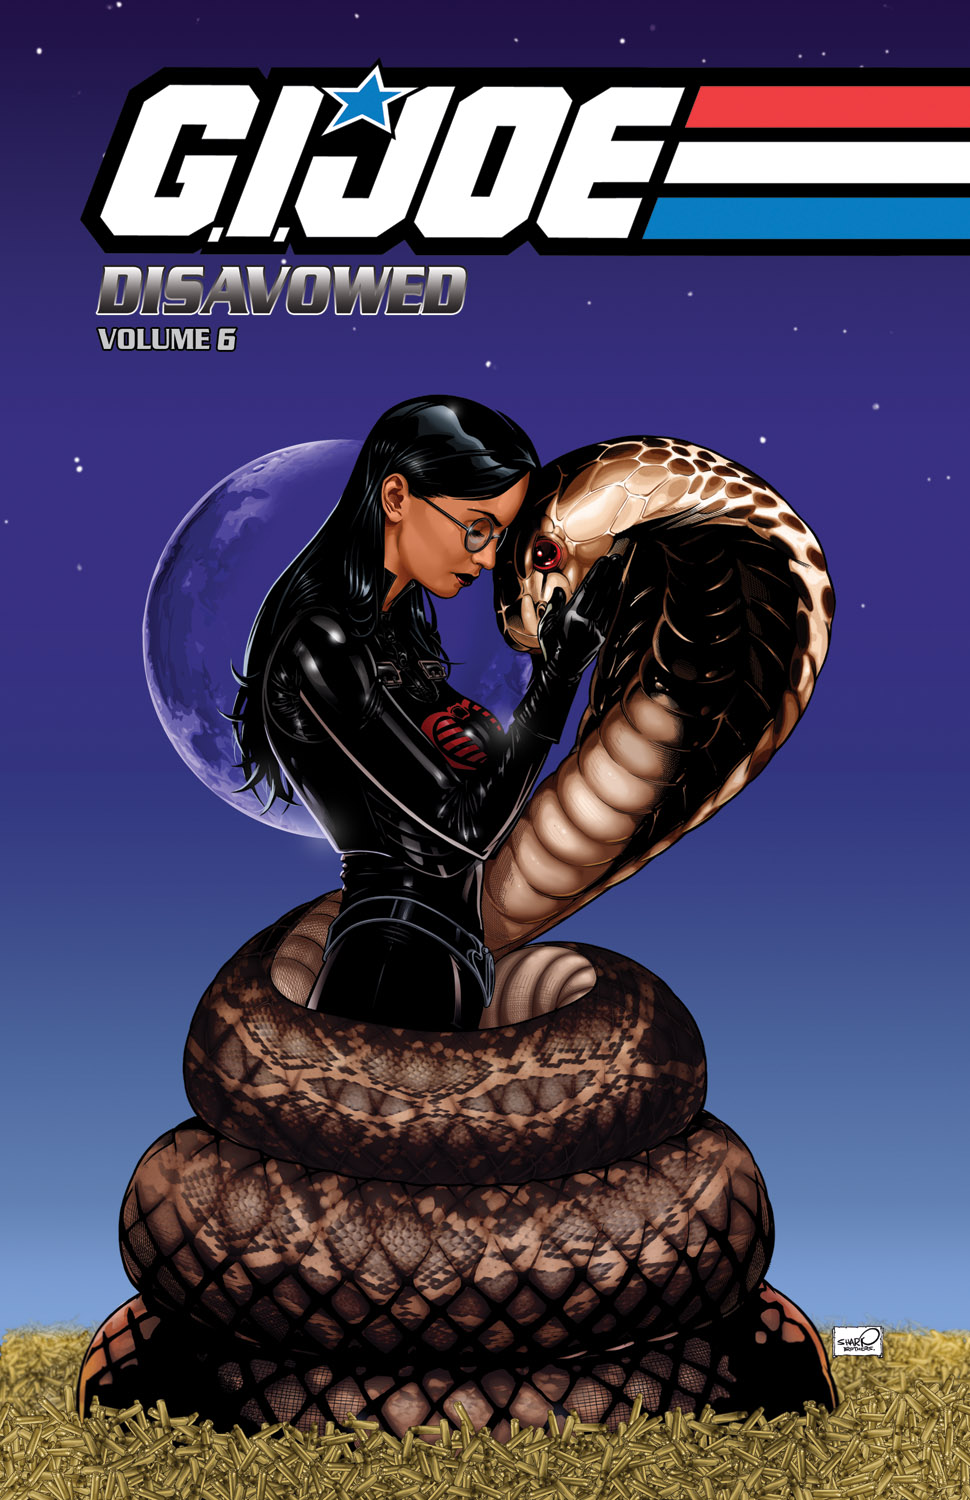 G.I. JOE: Disavowed Vol 6